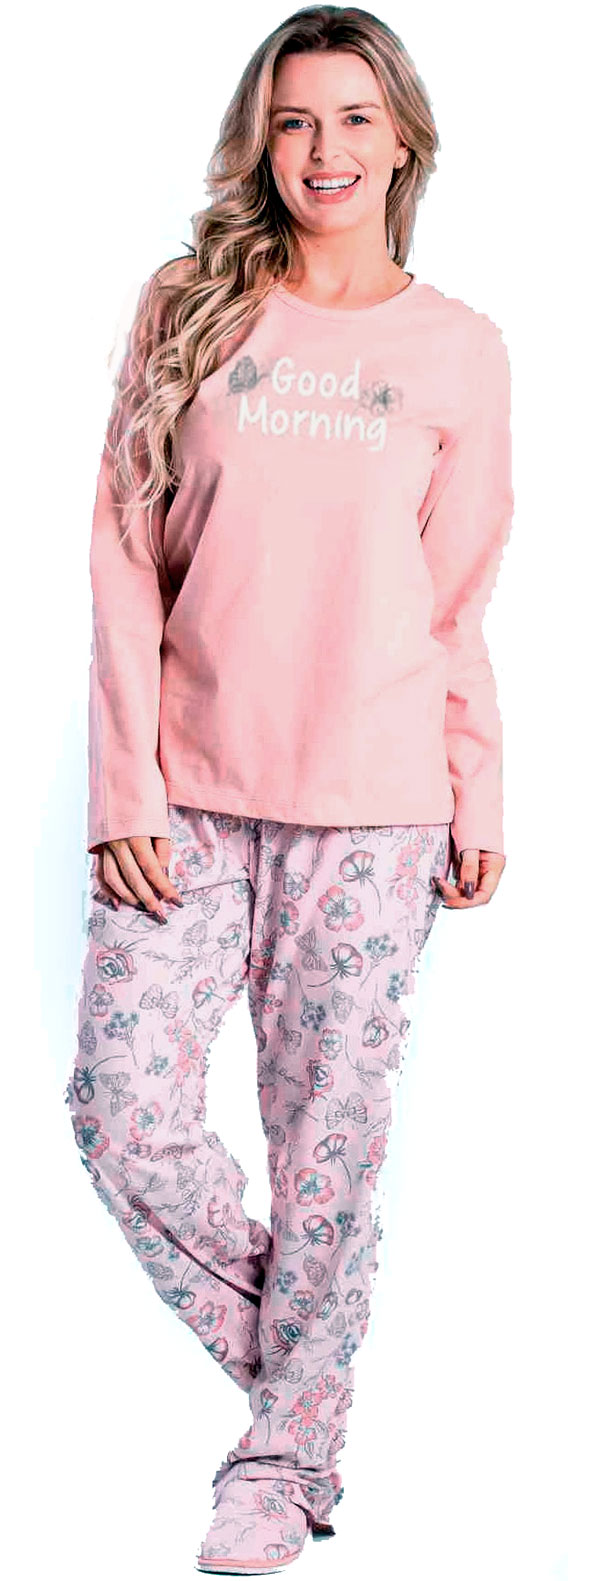 Pijama Good Morning Composê  01500015